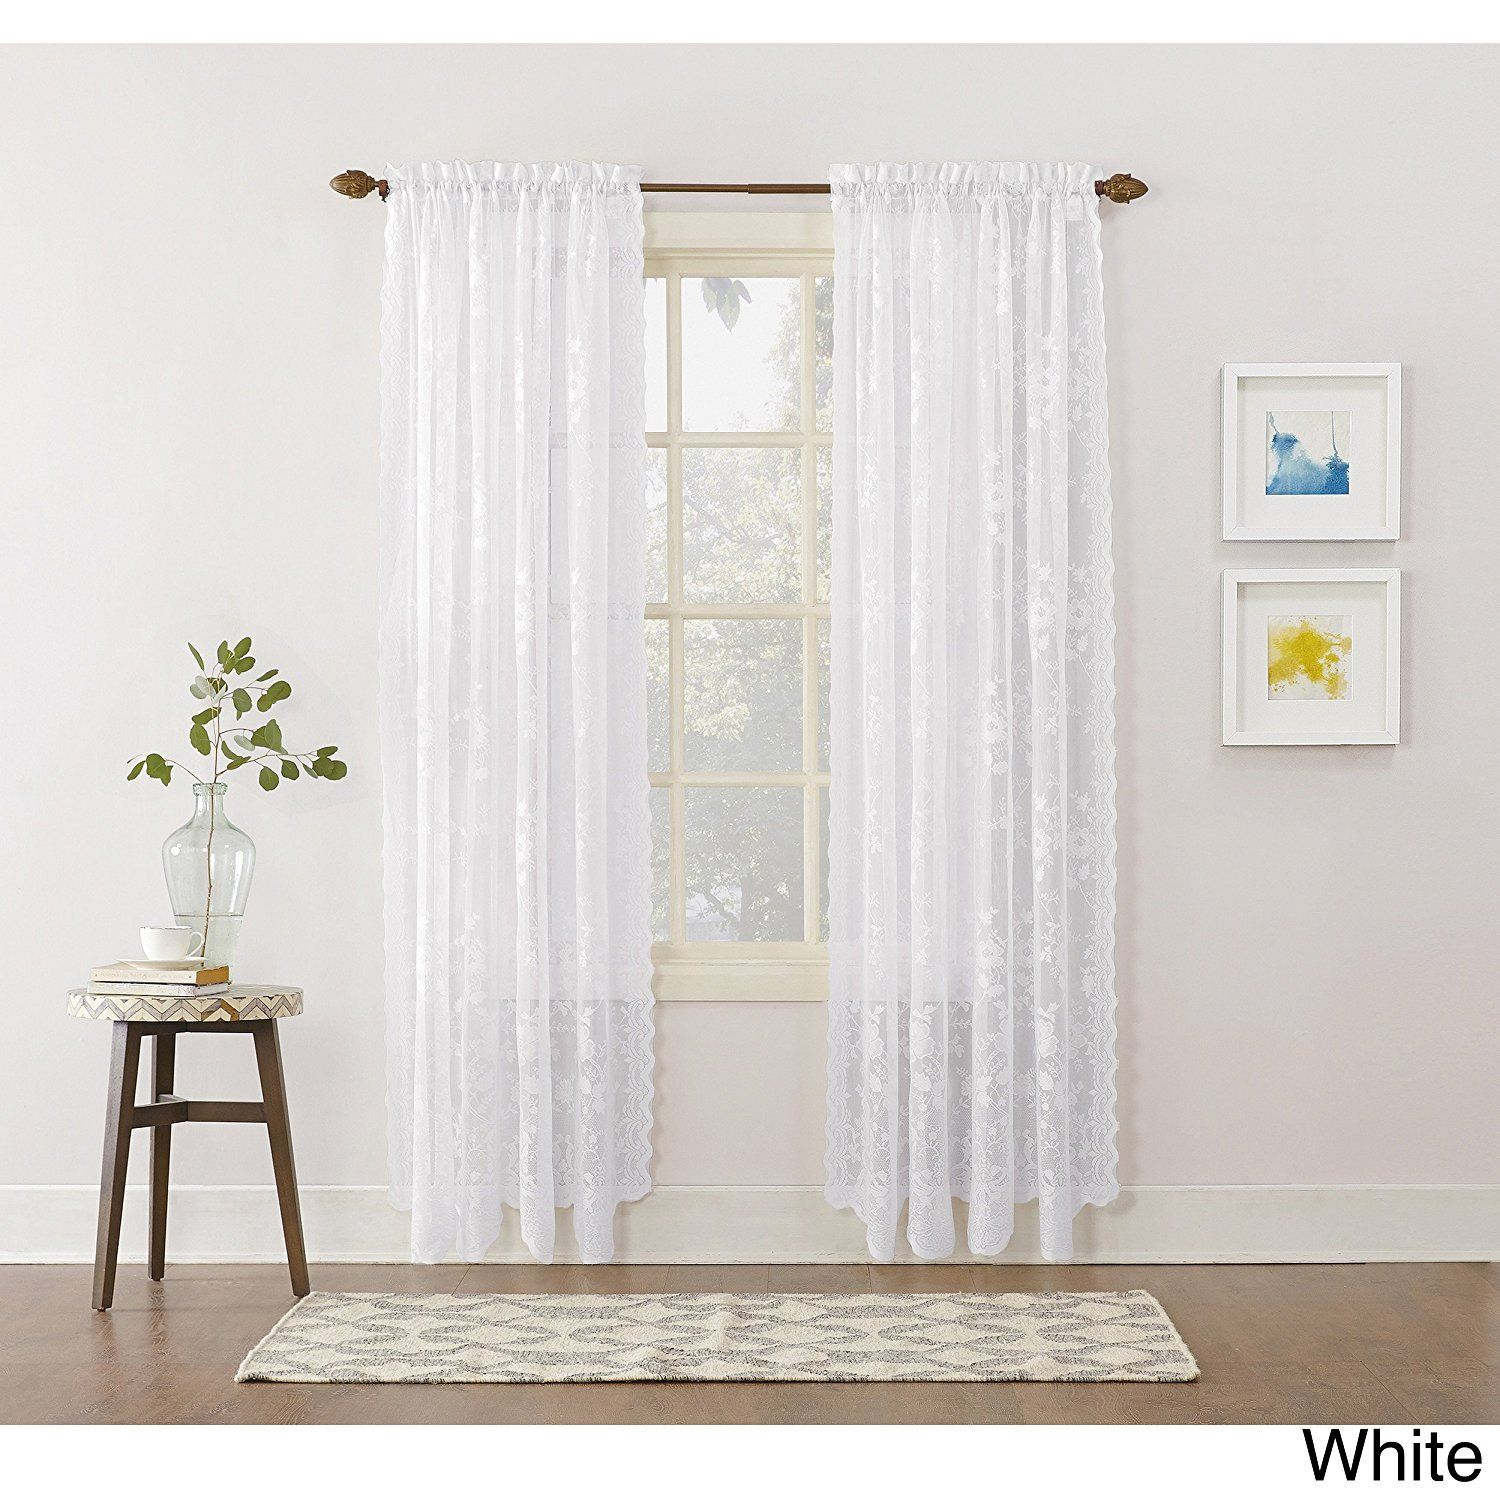 amazon com dp home fresno dark curtain single panel inch window blackout blue kitchen eclipse by